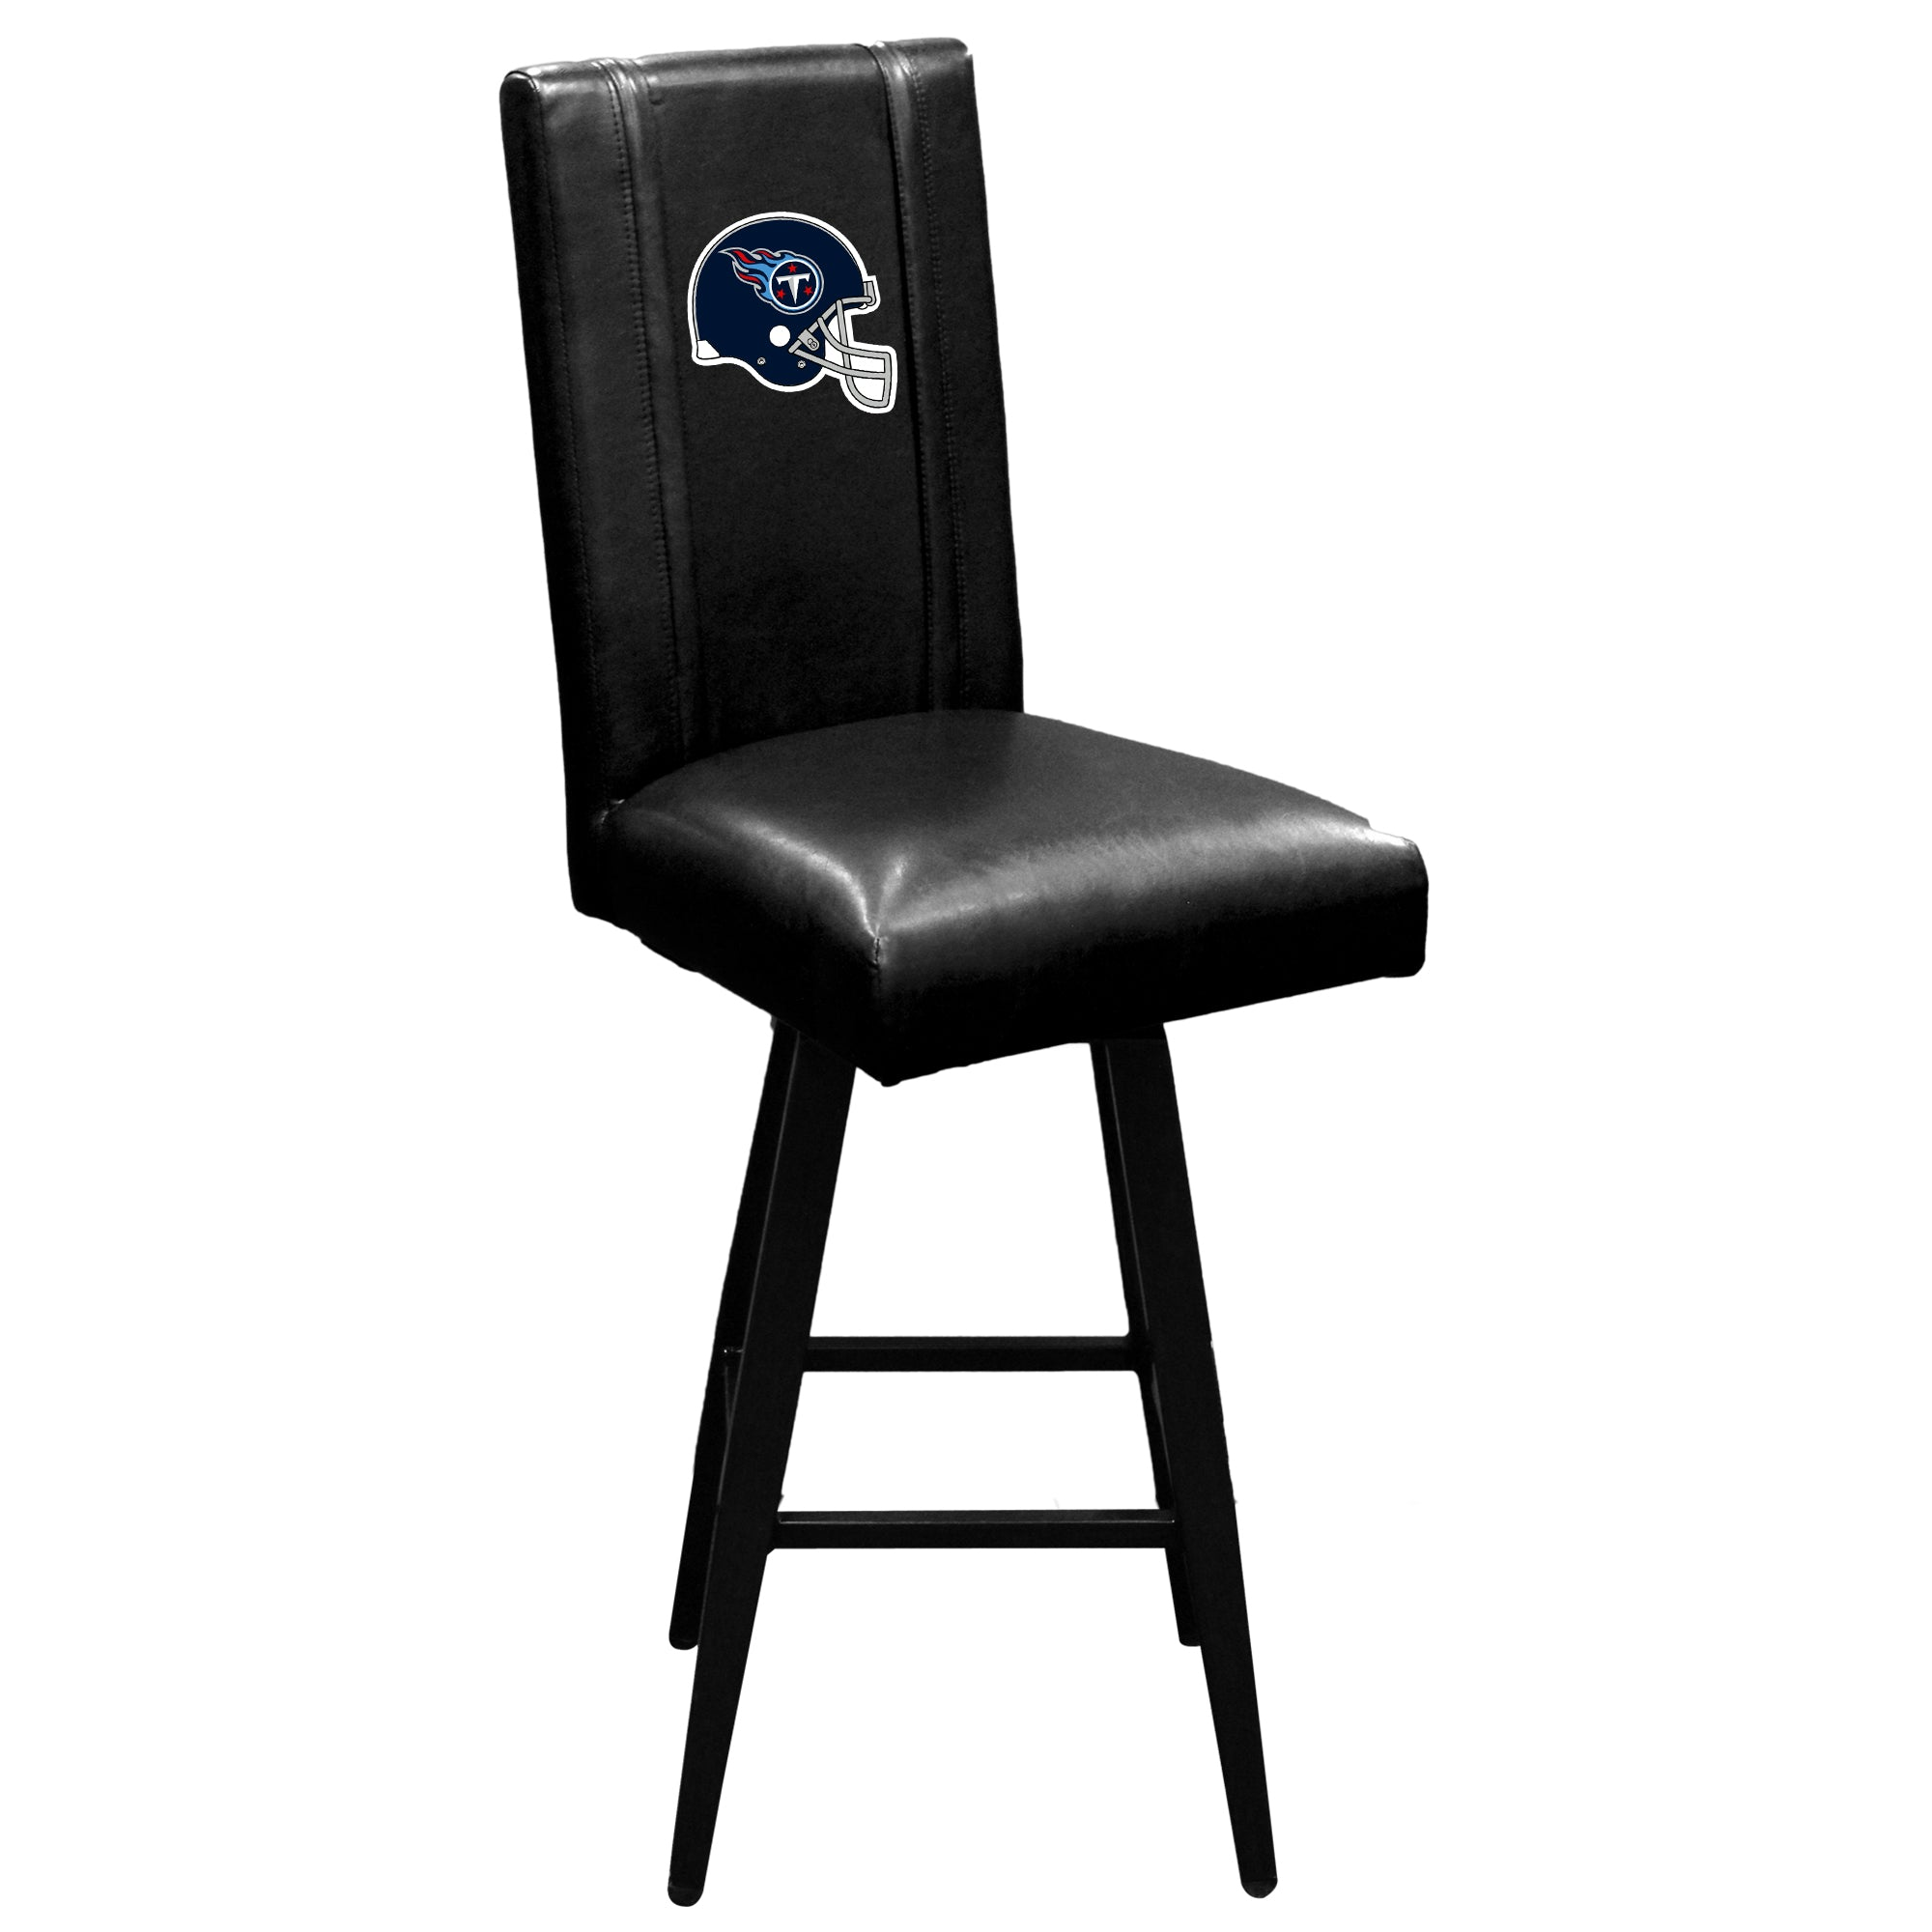 Swivel Bar Stool 2000 with  Tennessee Titans Helmet Logo